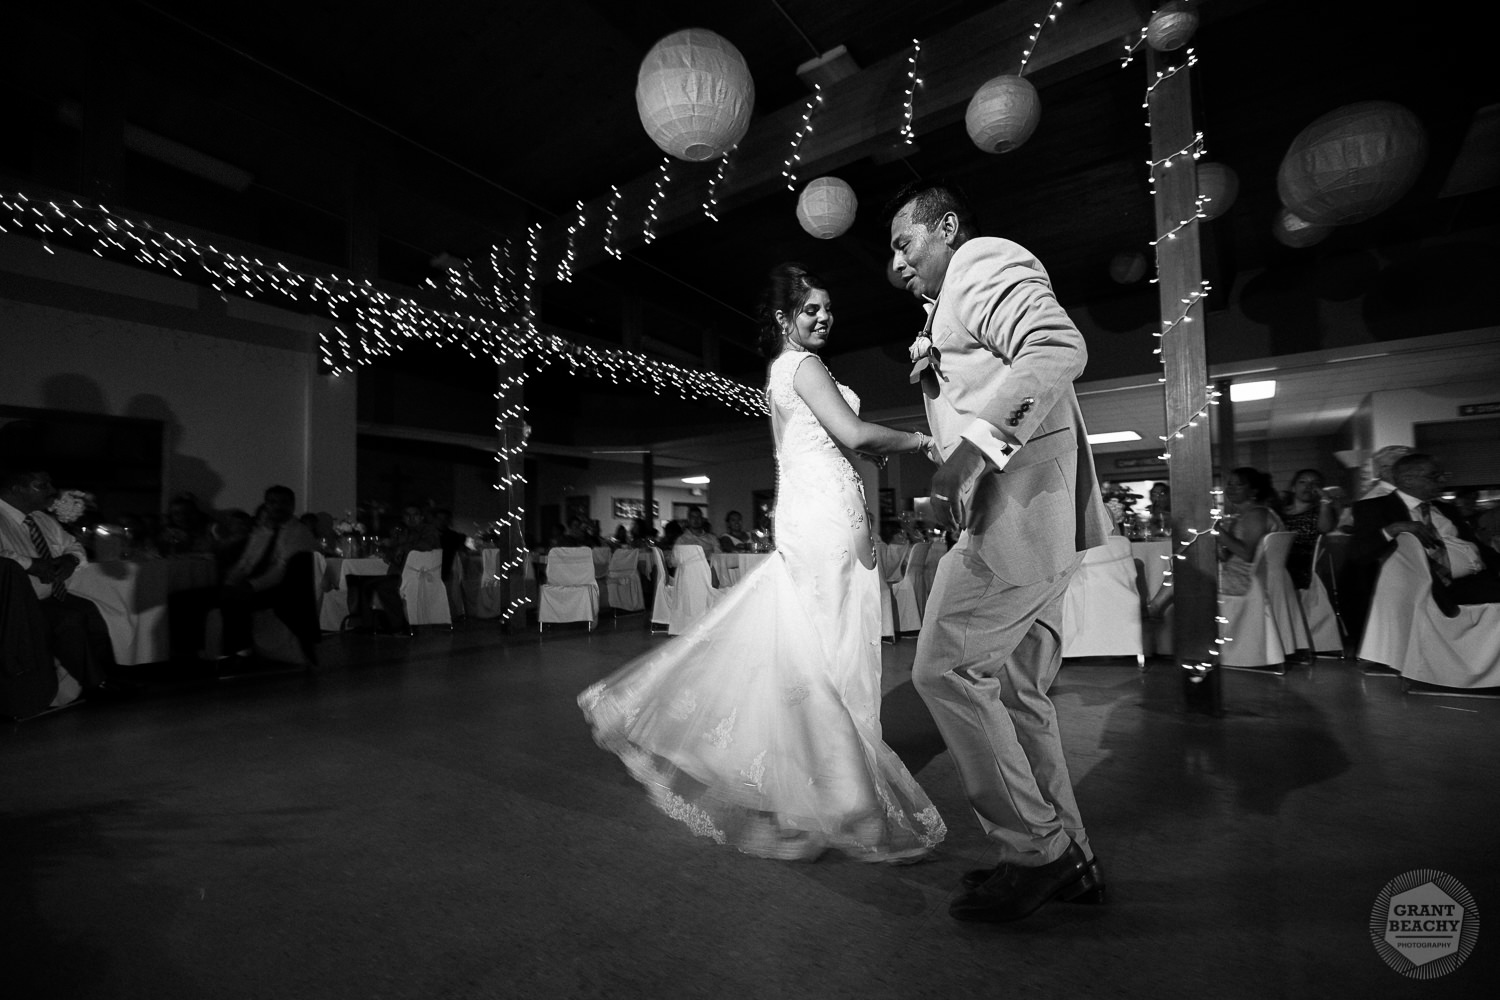 Grant Beachy.indiana wedding photographer-53.jpg